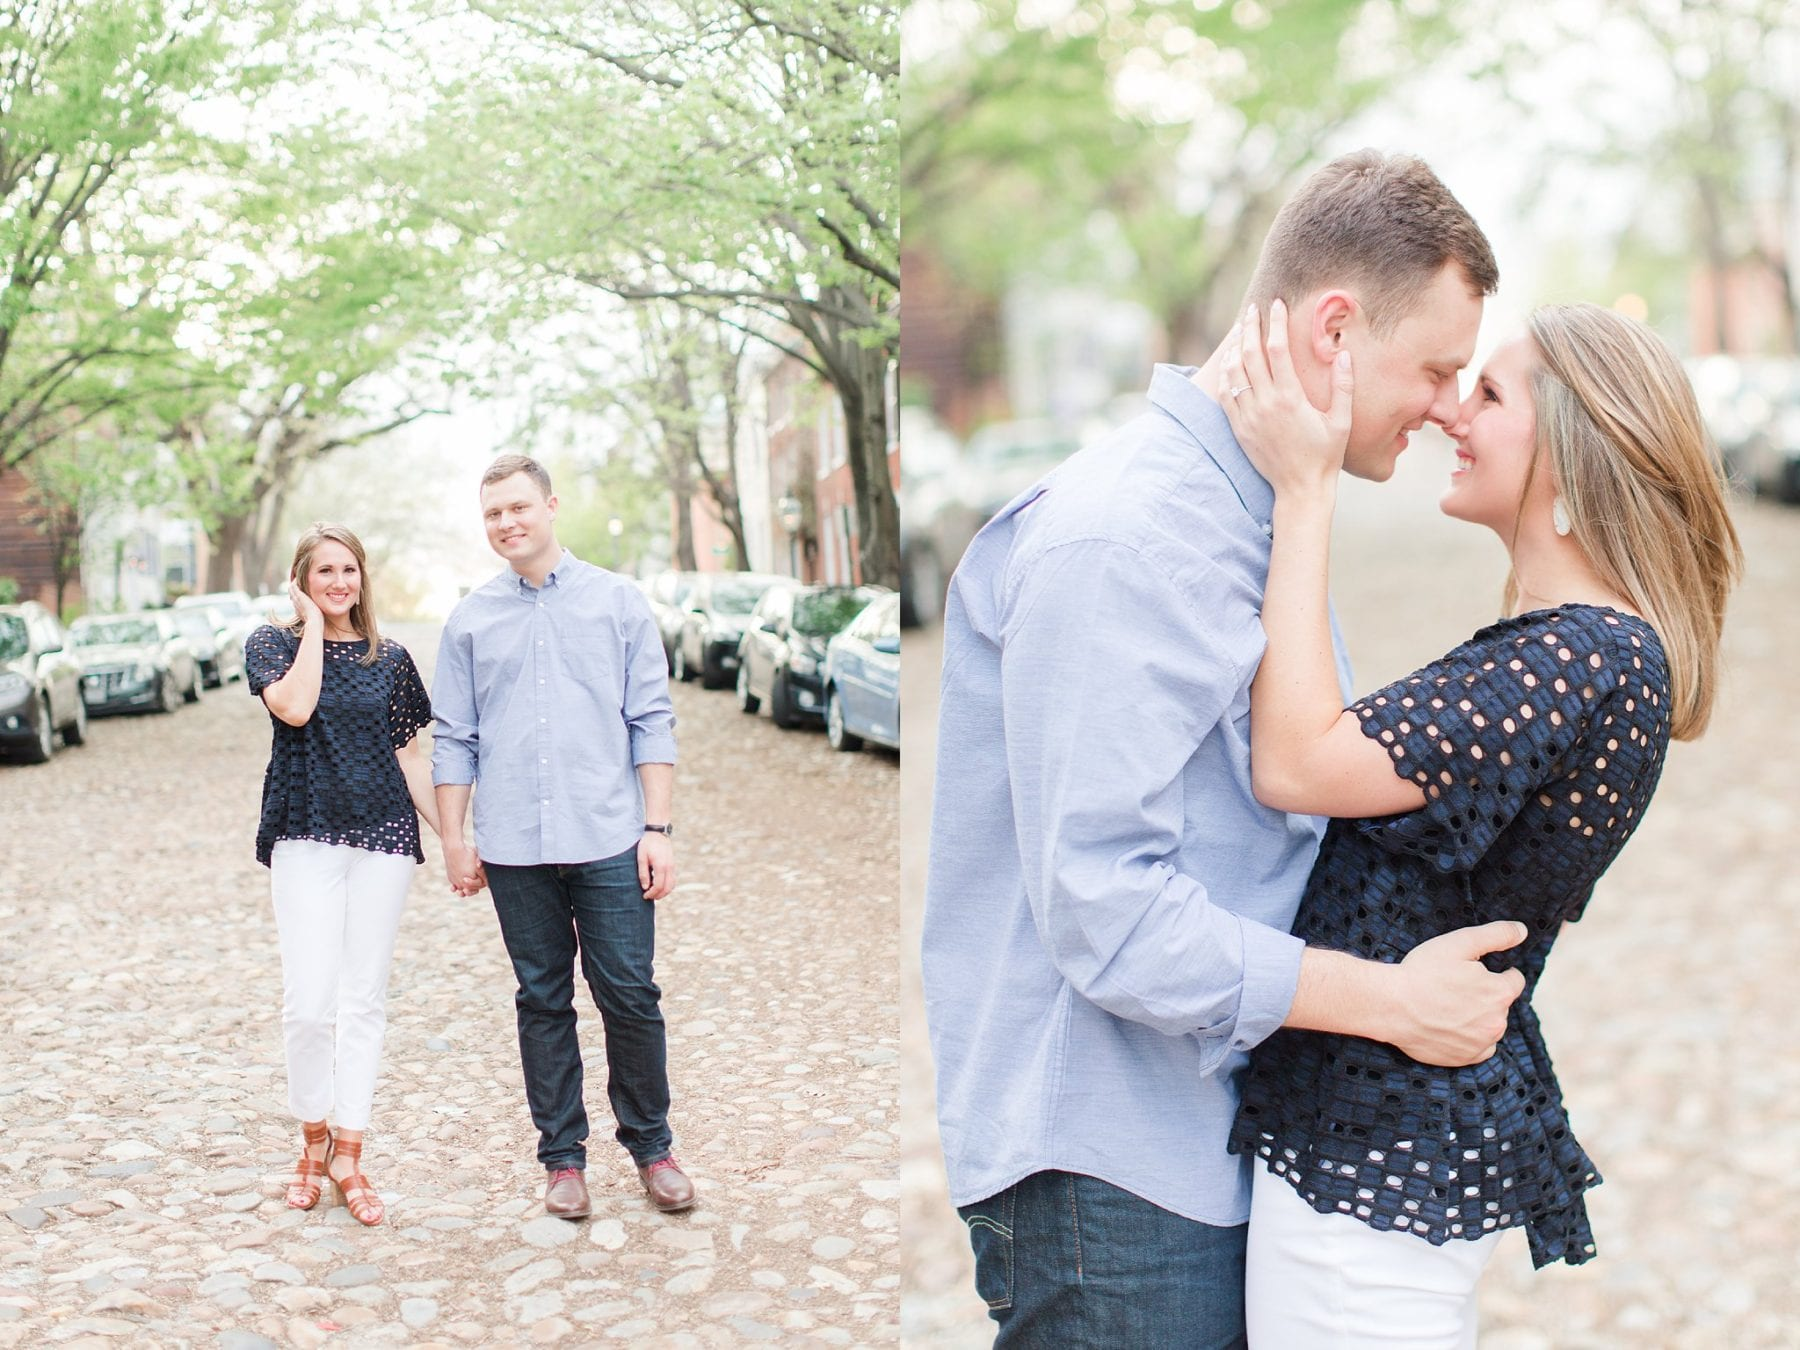 Springtime Old Town Alexandria Engagement Session Matt & Maxie Megan Kelsey Photography-213.jpg